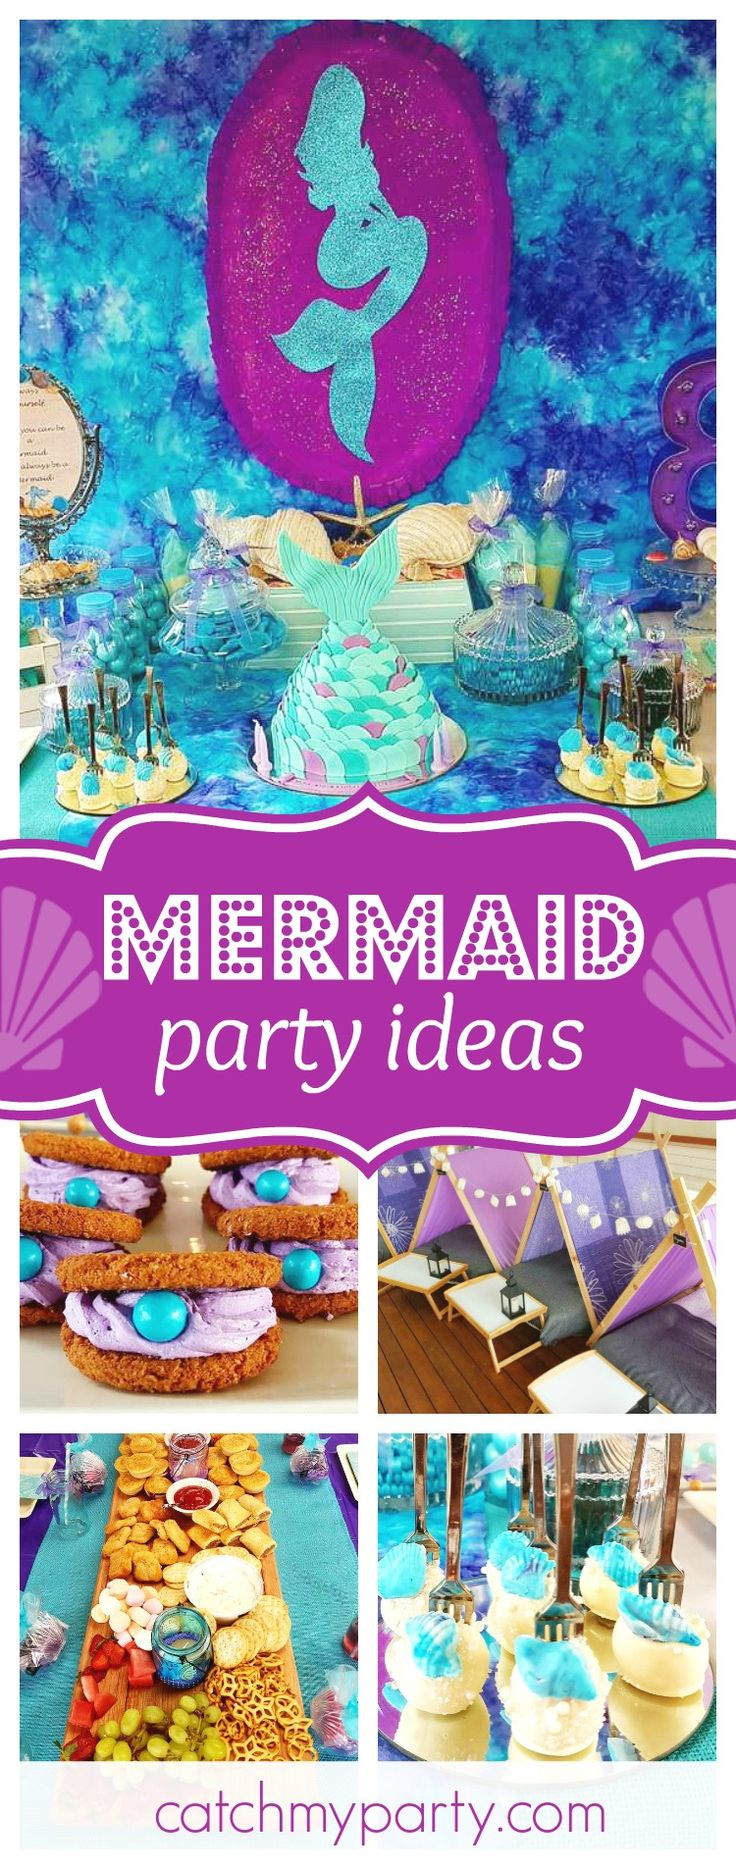 Take a look at this pretty Mermaid birthday party! The Mermaid tail birthday cake is gorgeous!! See more party ideas and share yours at CatchMyParty.com